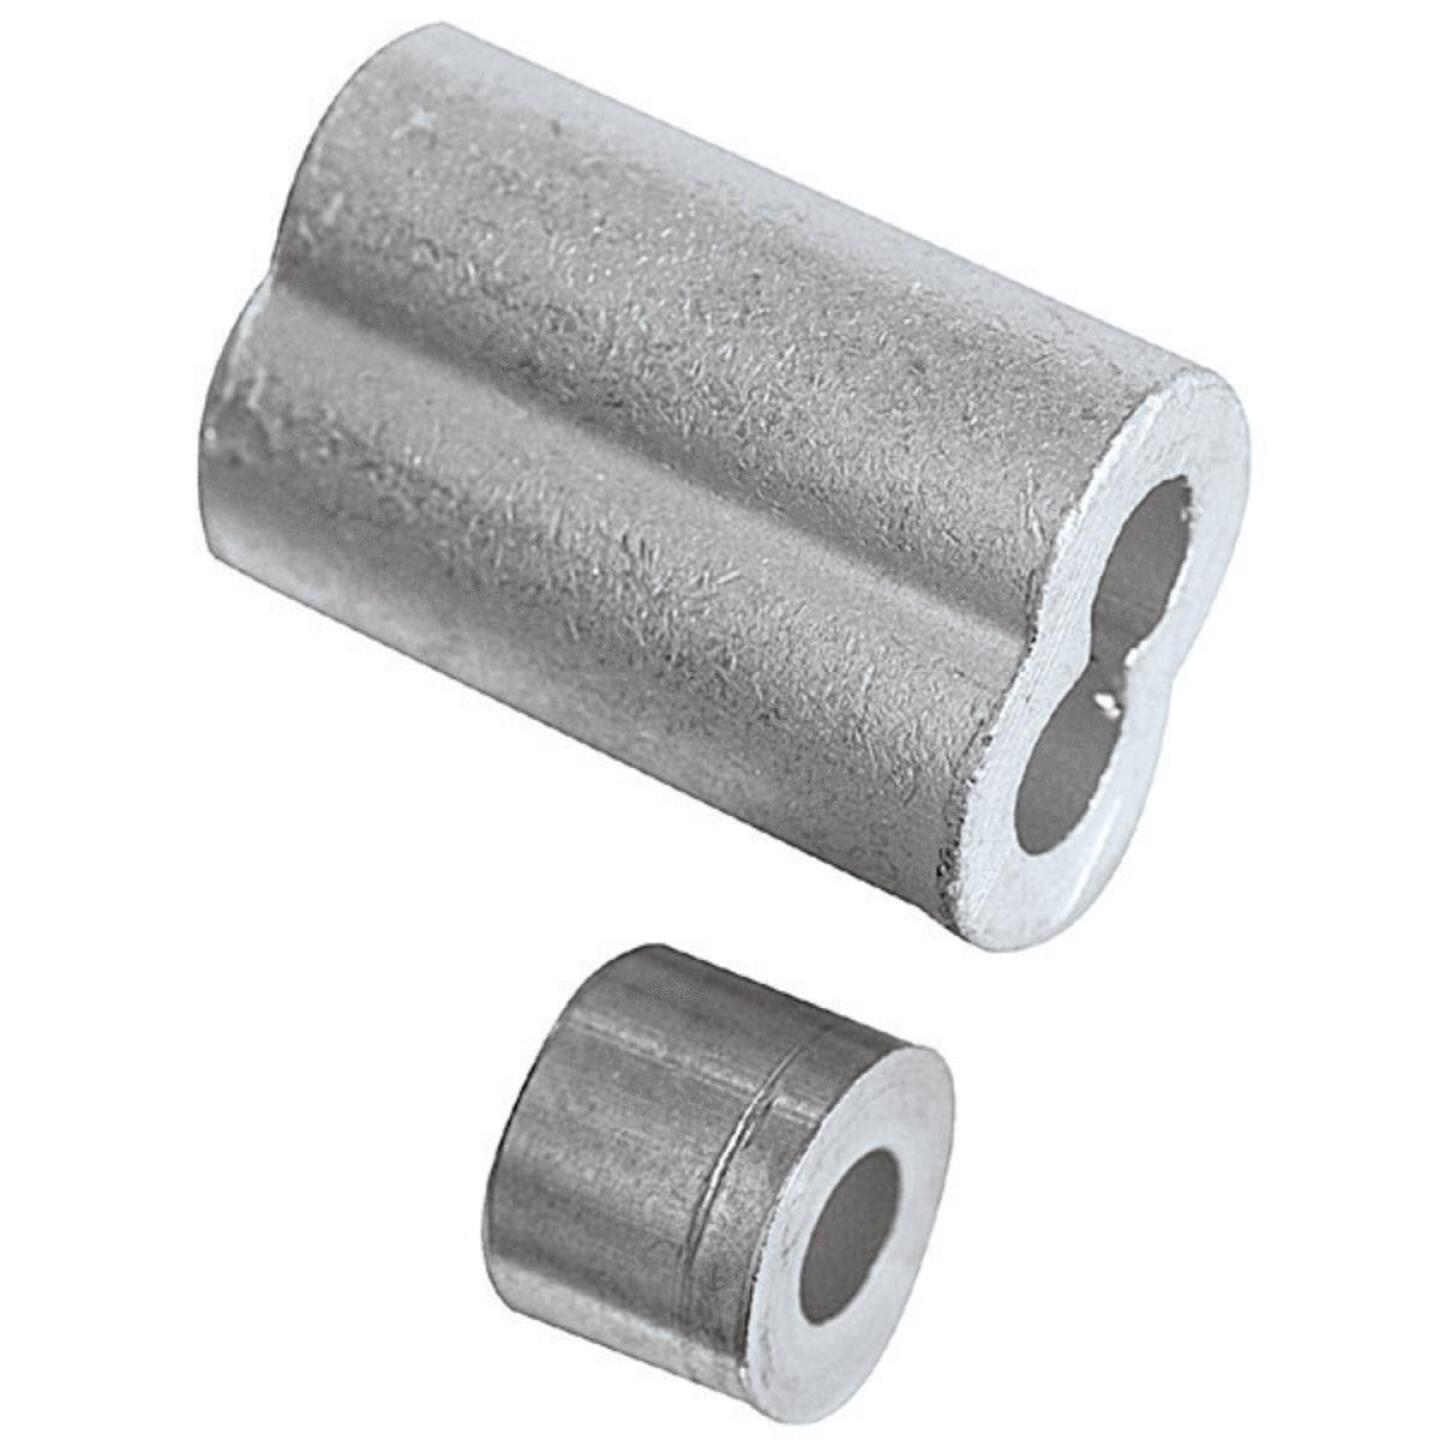 National 3/16 In. Aluminum Garage Door Ferrule & Stop Kit Image 2